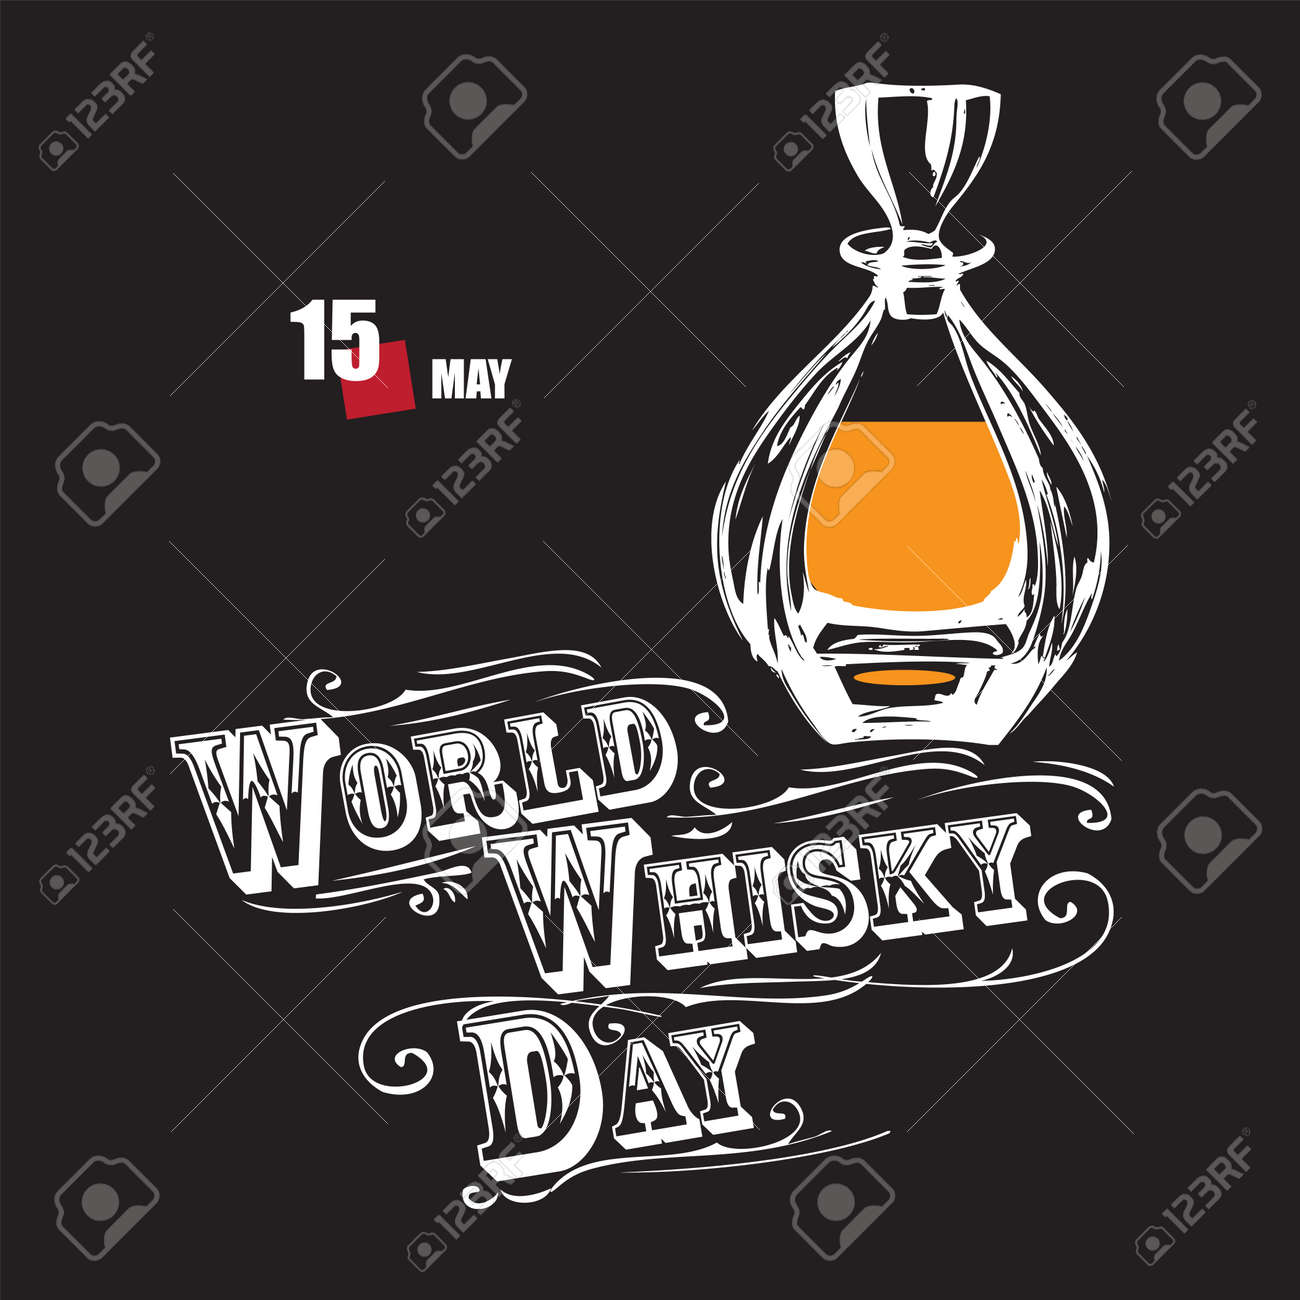 The calendar event is celebrated in may - World Whisky Day - 169061384